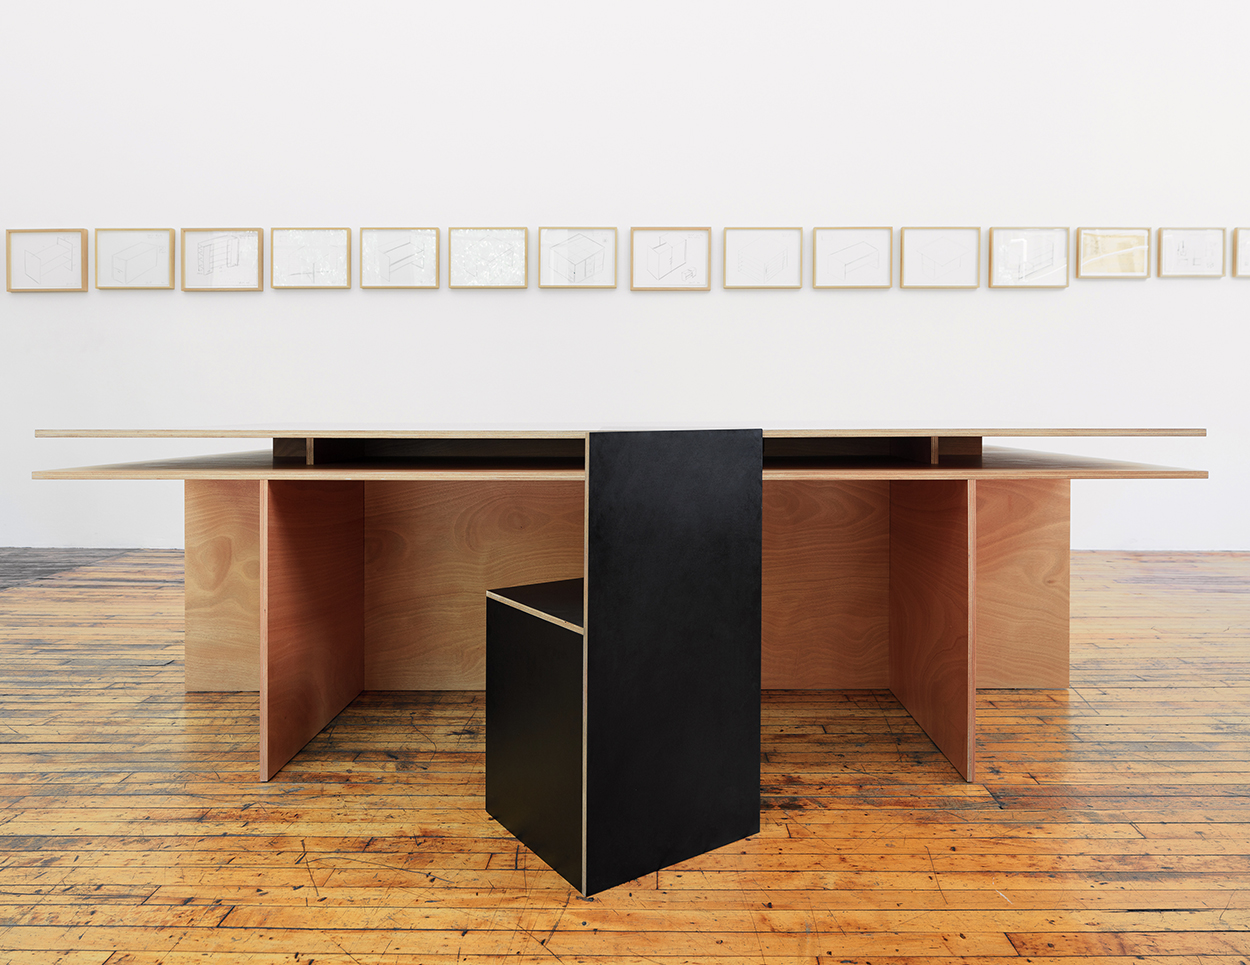 How Designing Objects Like Chair 84 Released In Stock Black Plywood This Spring Allowed The Artist To Synthesize His Sculptural And Theoretical